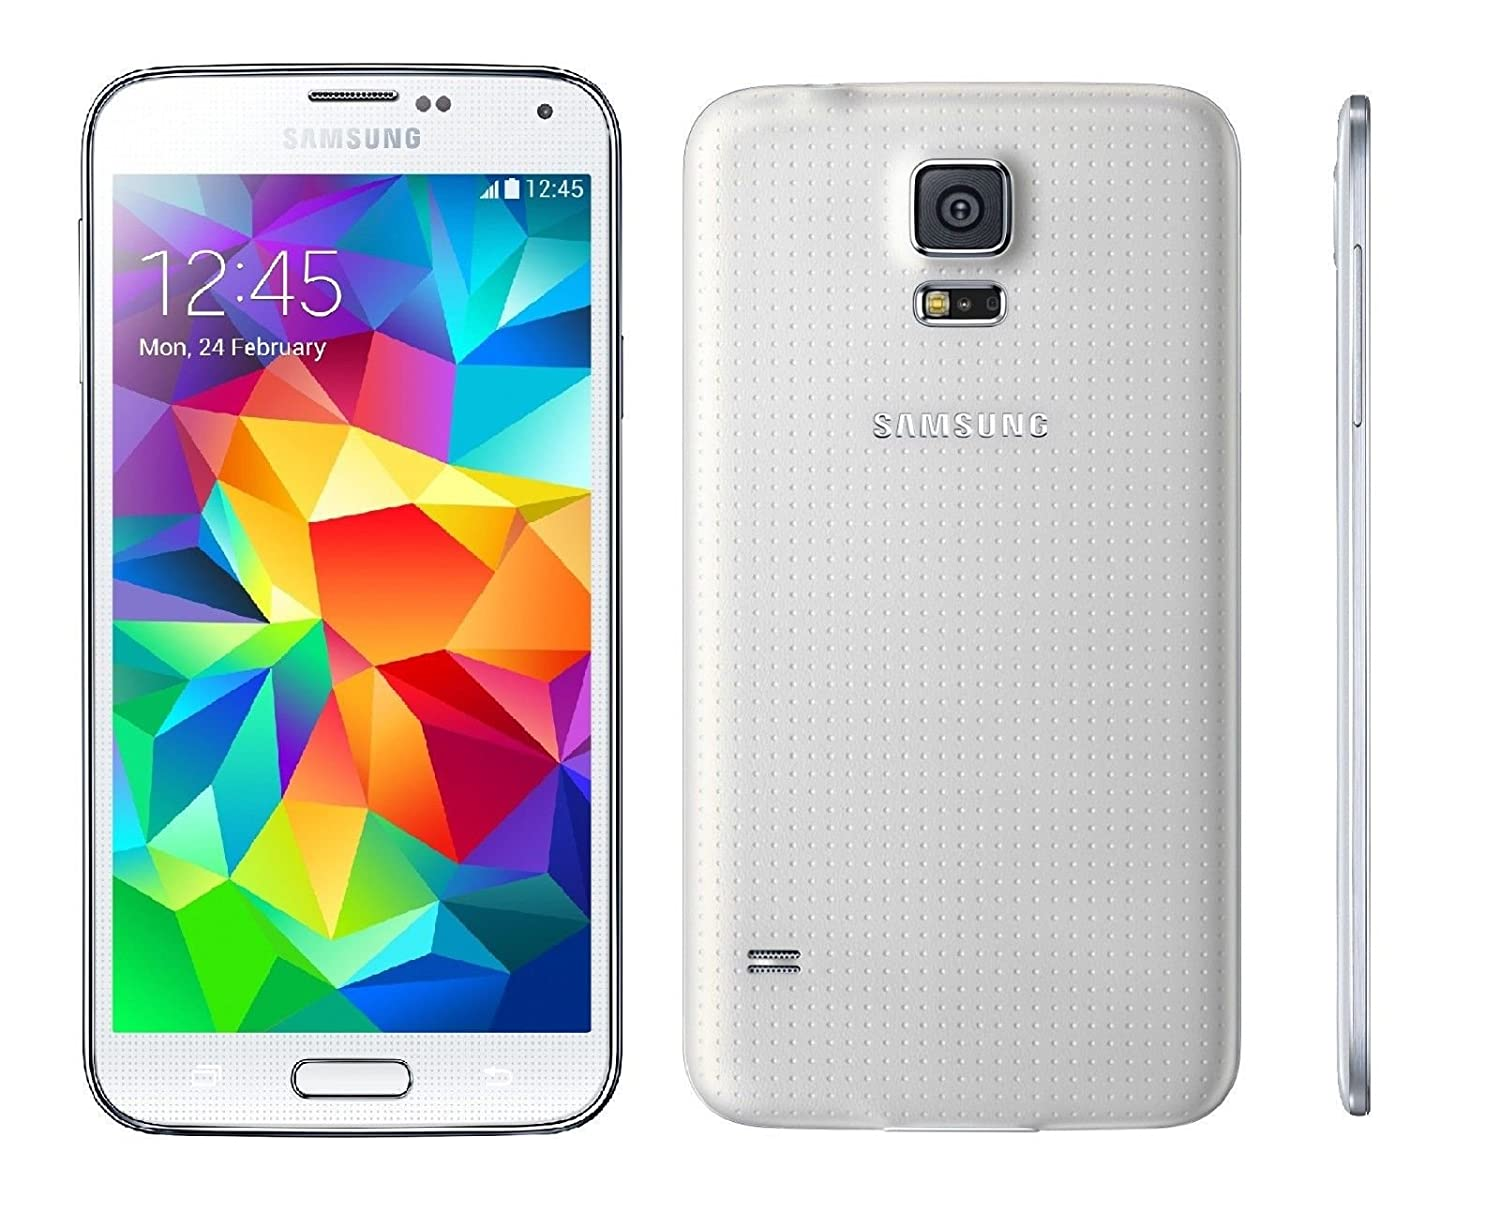 Samsung Galaxy S5 Mini G800H 3G 16GB Unlocked GSM International Version - White